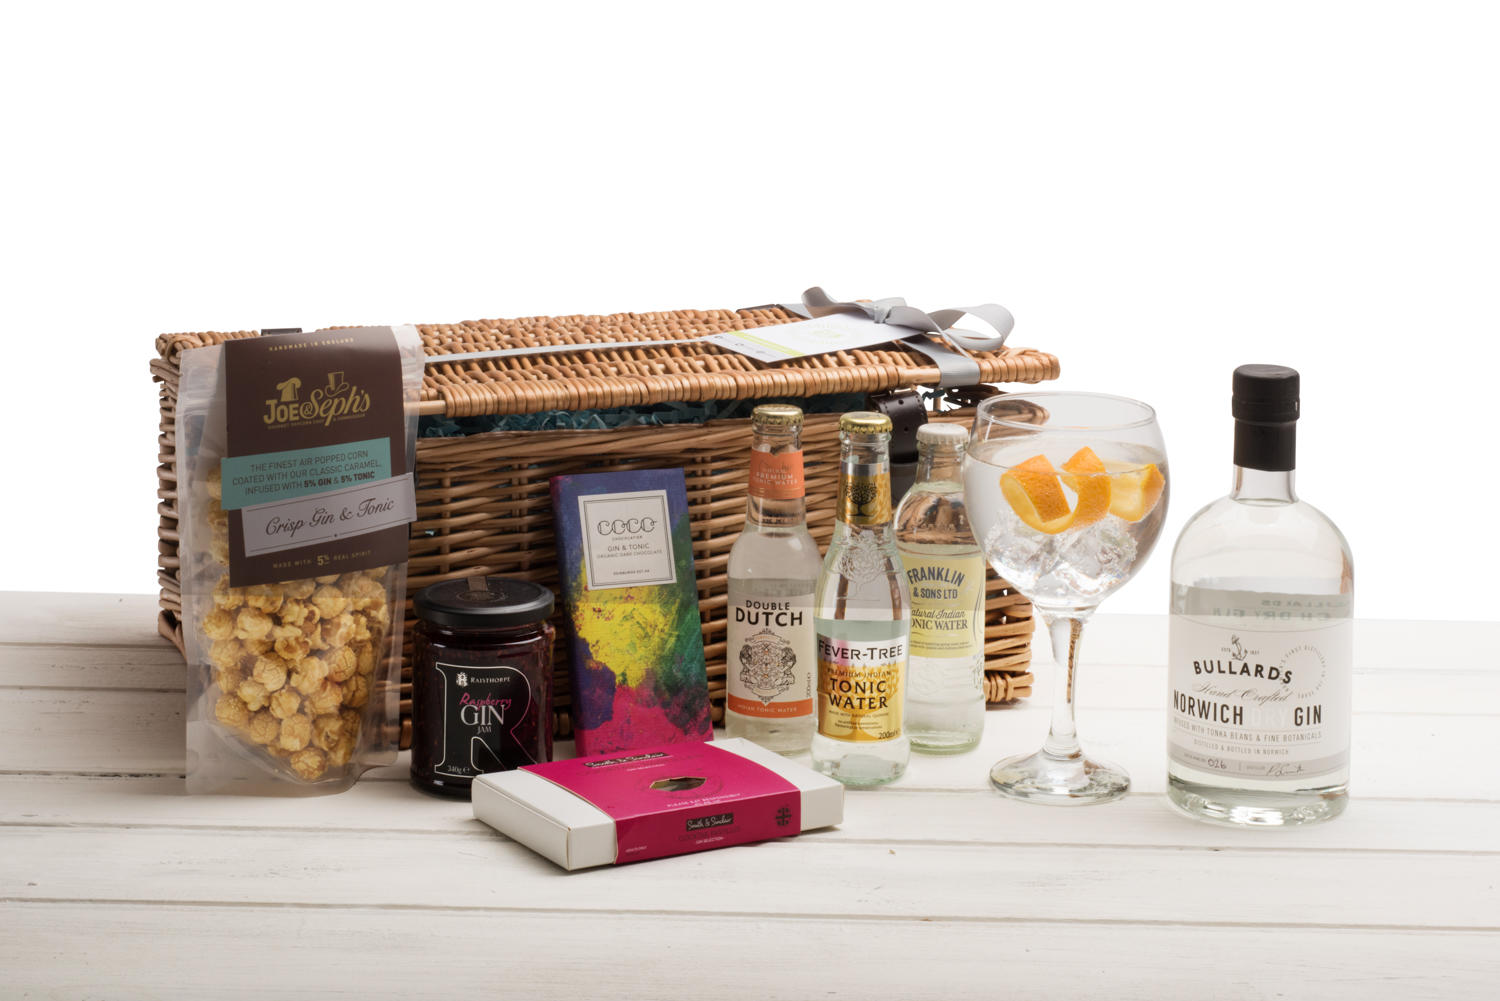 Bullards Norwich Gin Hamper